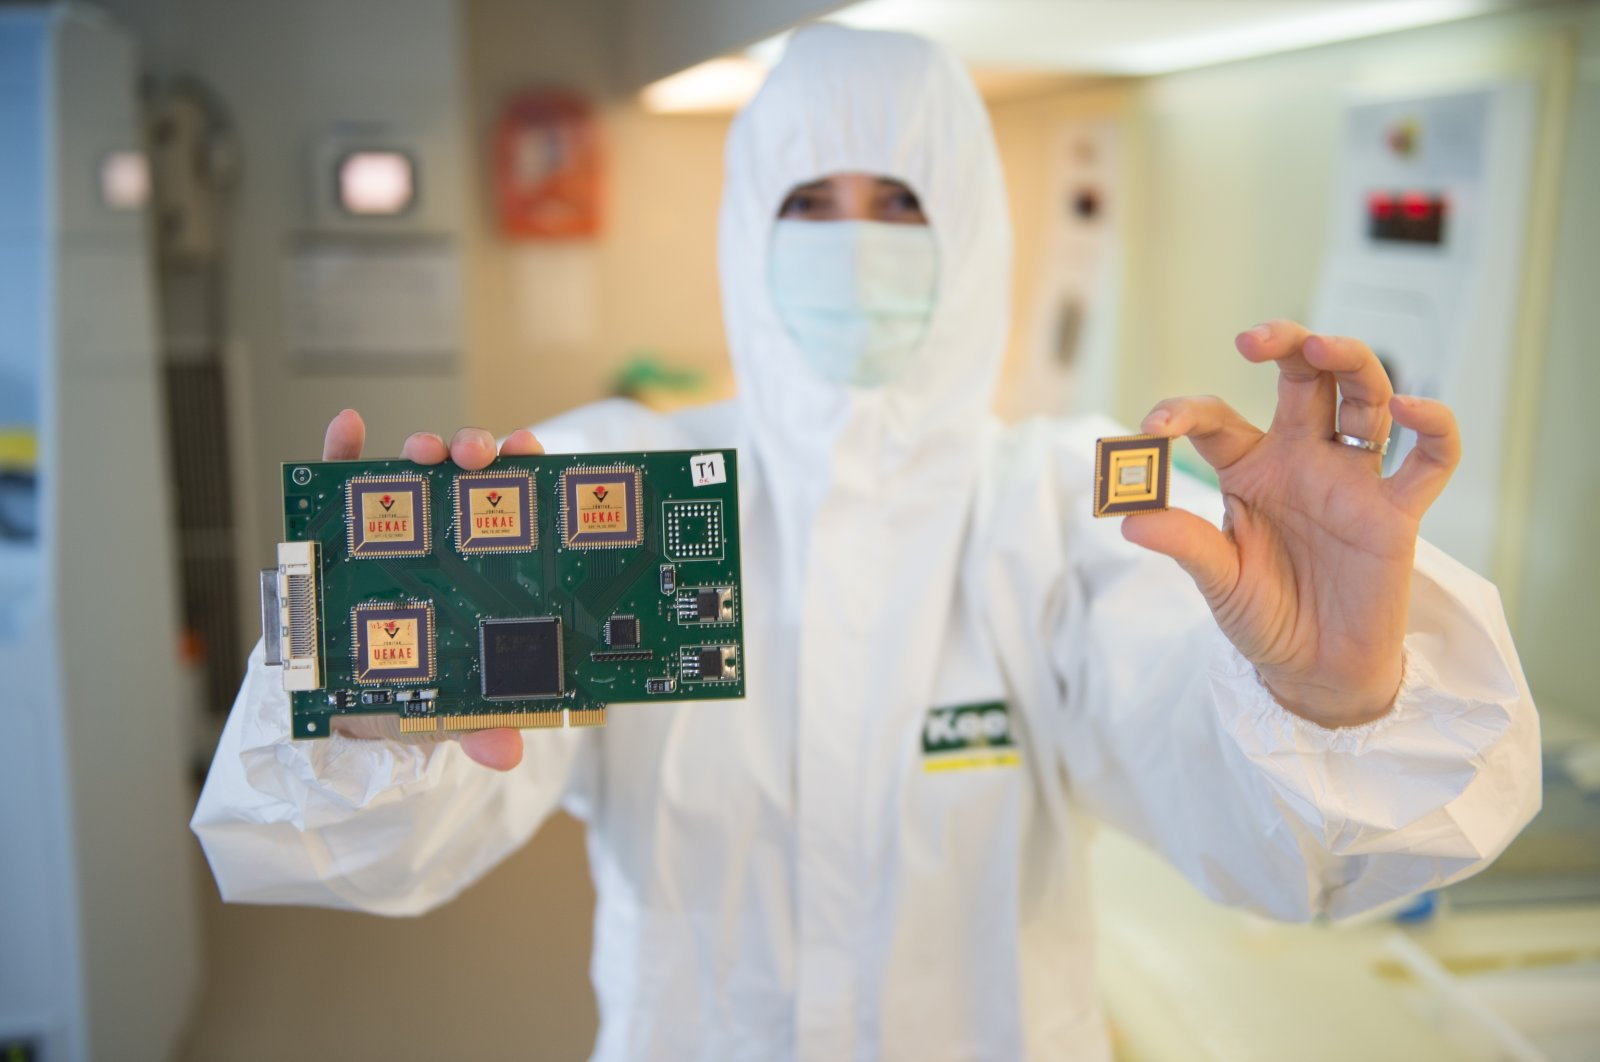 An engineer holds chips produced at a laboratory in the Gebze district of the northwestern province of Kocaeli, Turkey, April 9, 2021. (Photo by Ilhami Yıldırım)